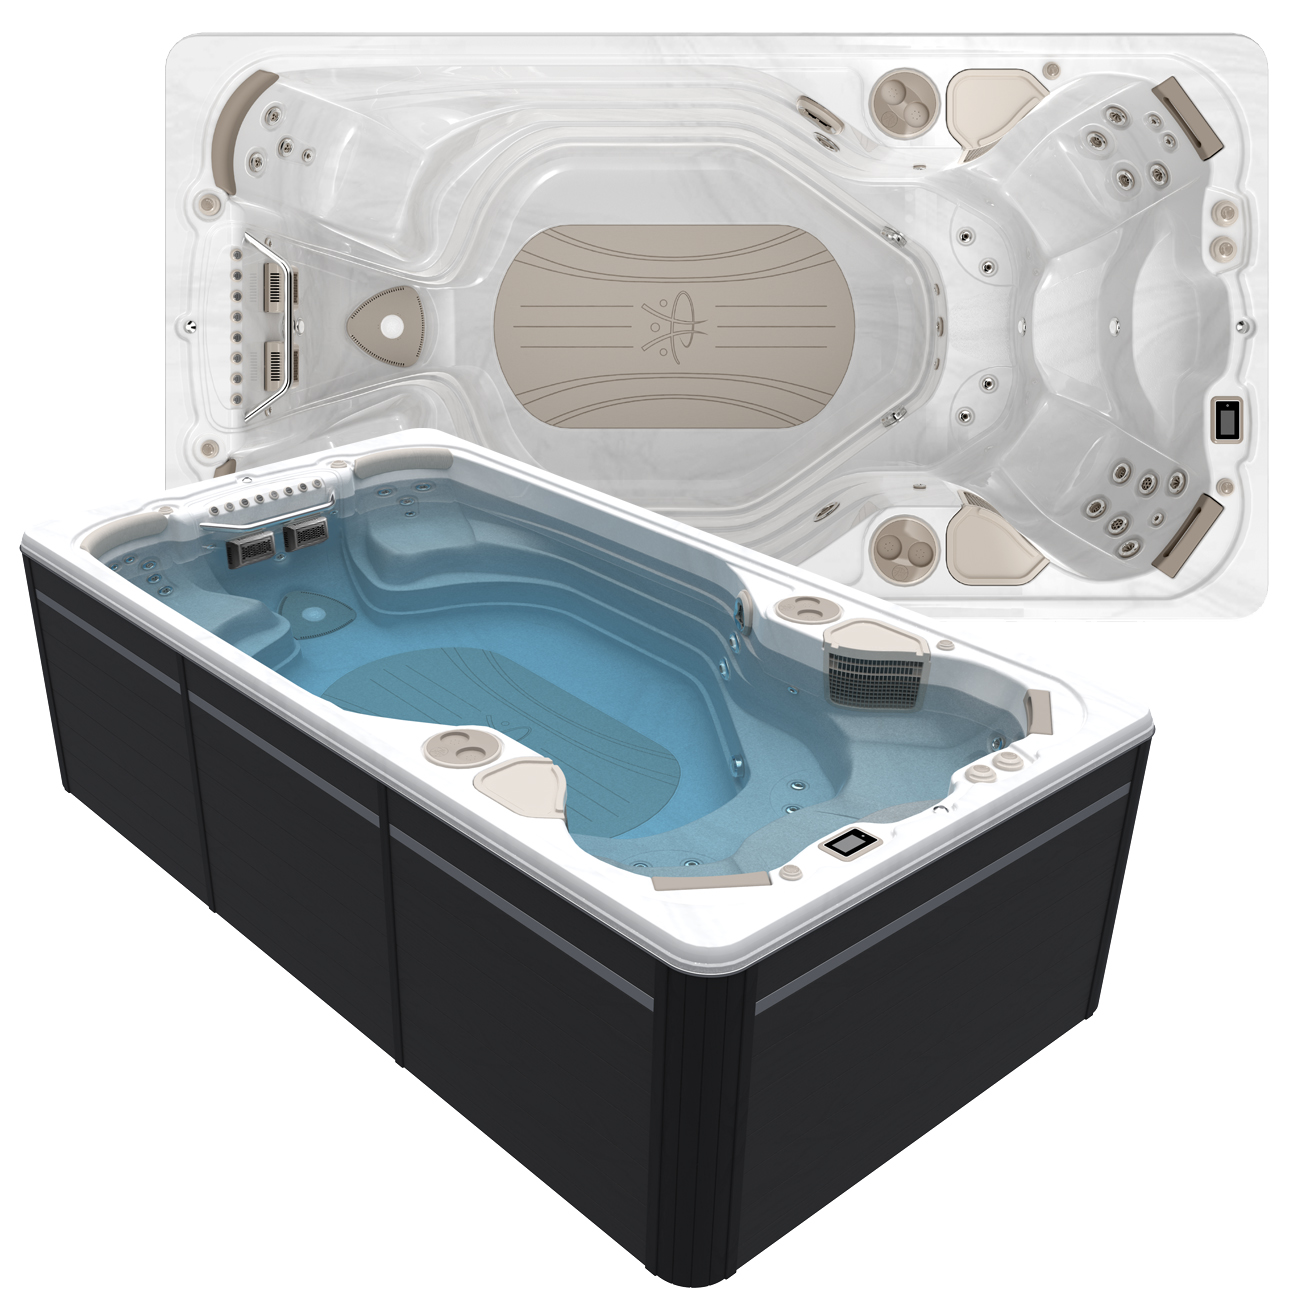 Hydropool AquaSport 14AX Swim Spa